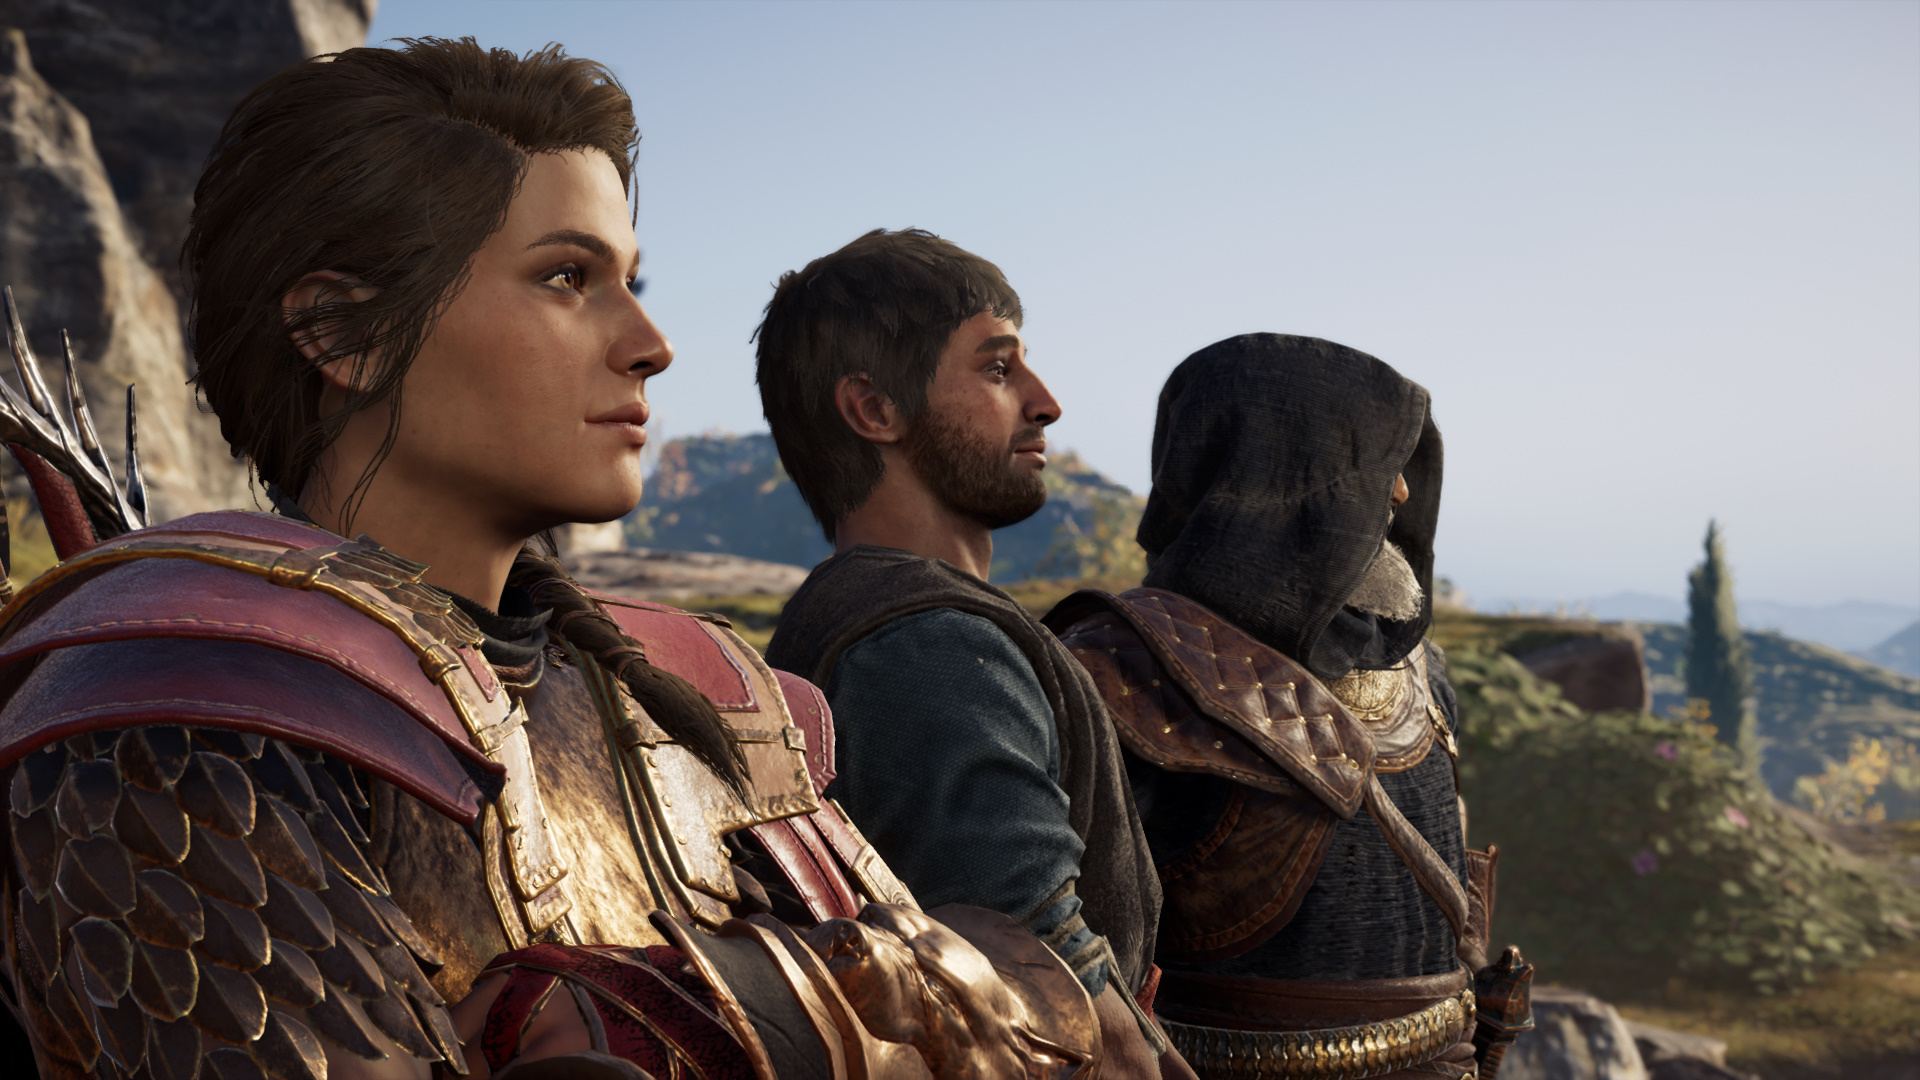 Assassin's Creed Odyssey, DLC, controversy, cutscene, ubisoft, changes, assassin's creed, odyssey, relationship, heterosexual